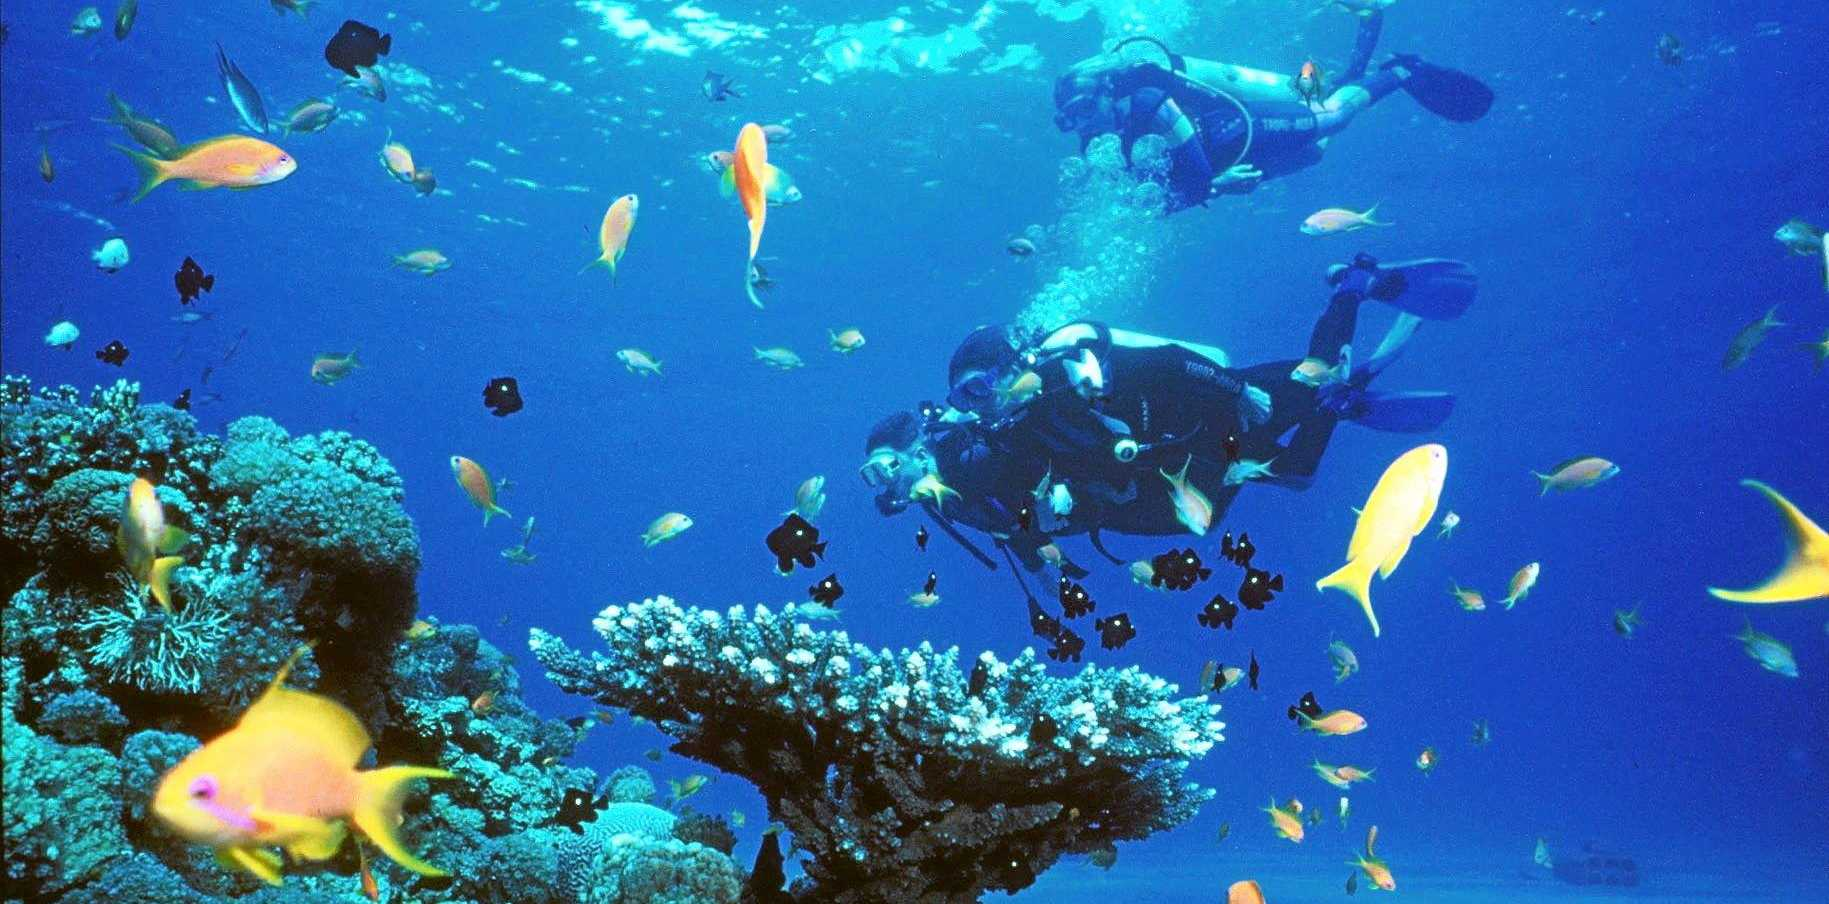 Perfect buoyancy takes many dives to achieve.